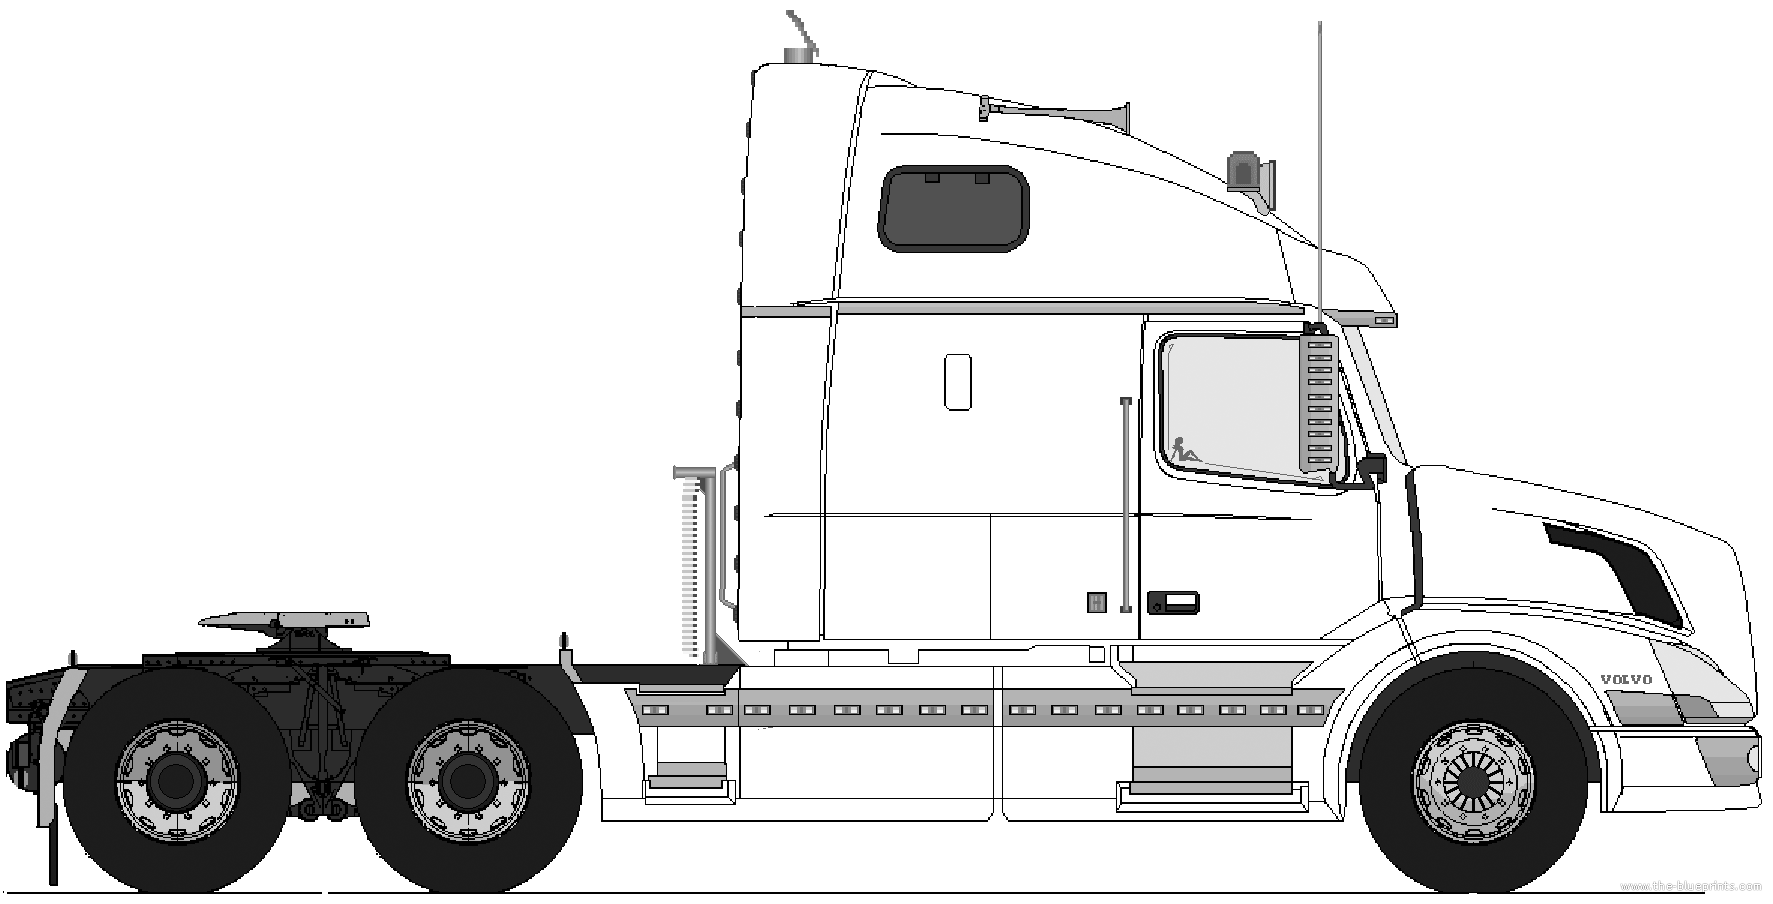 Volvo Vn Truck Wiring Diagrams. Volvo. Wiring Diagrams Instructions